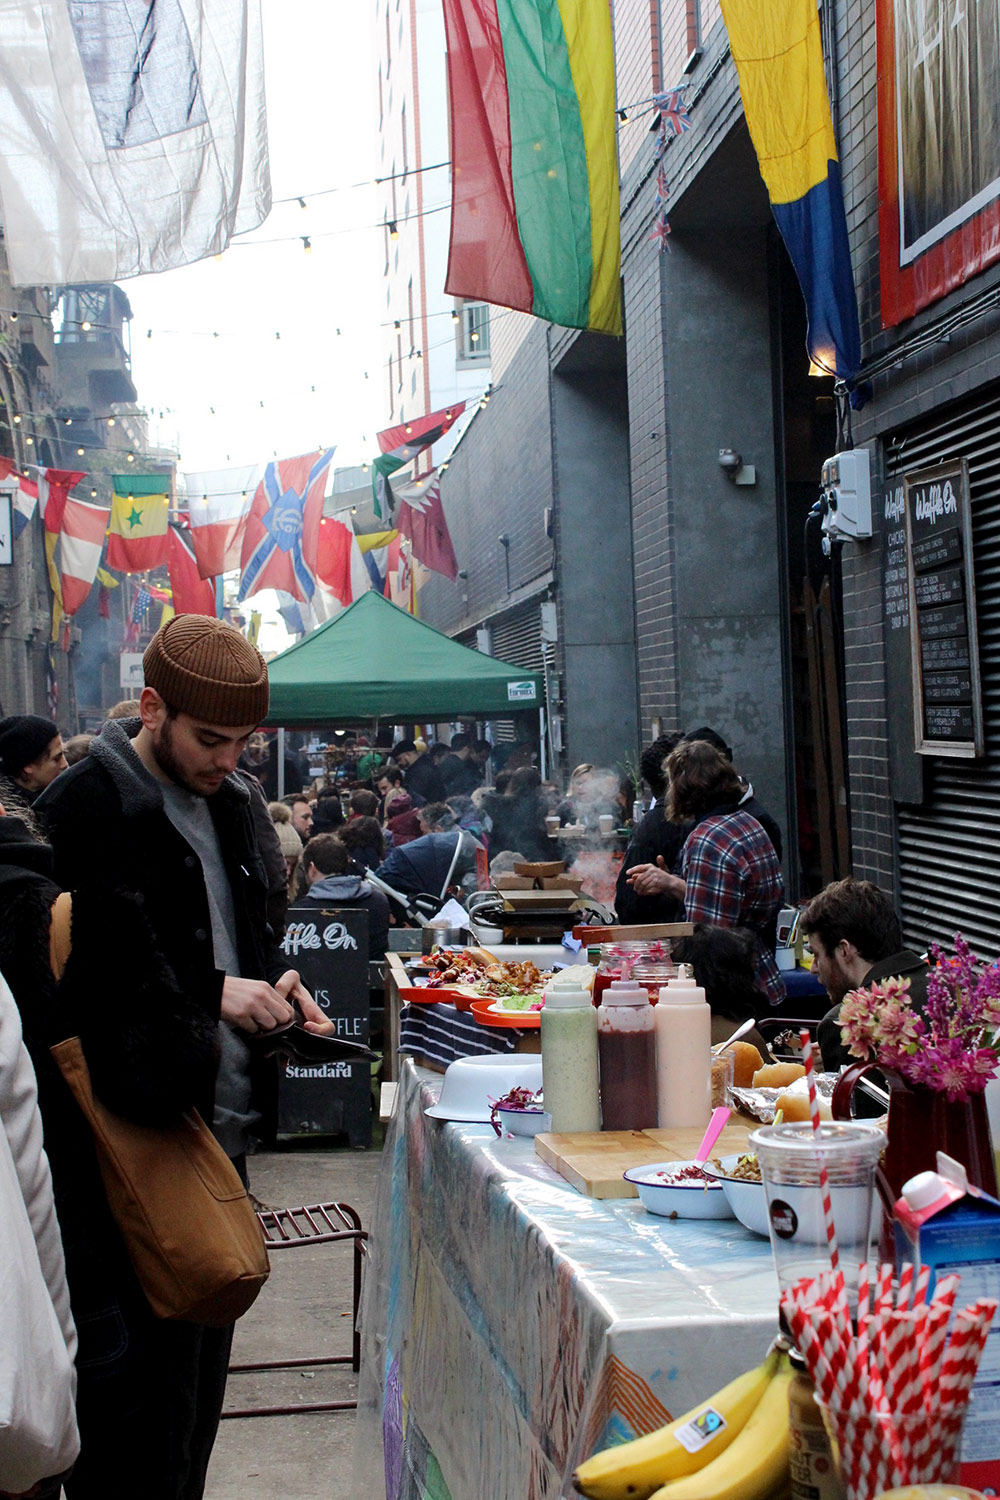 This is what you are greeted by when entering the market, wonderful smells, World flags and the bustle of a thriving street food market.